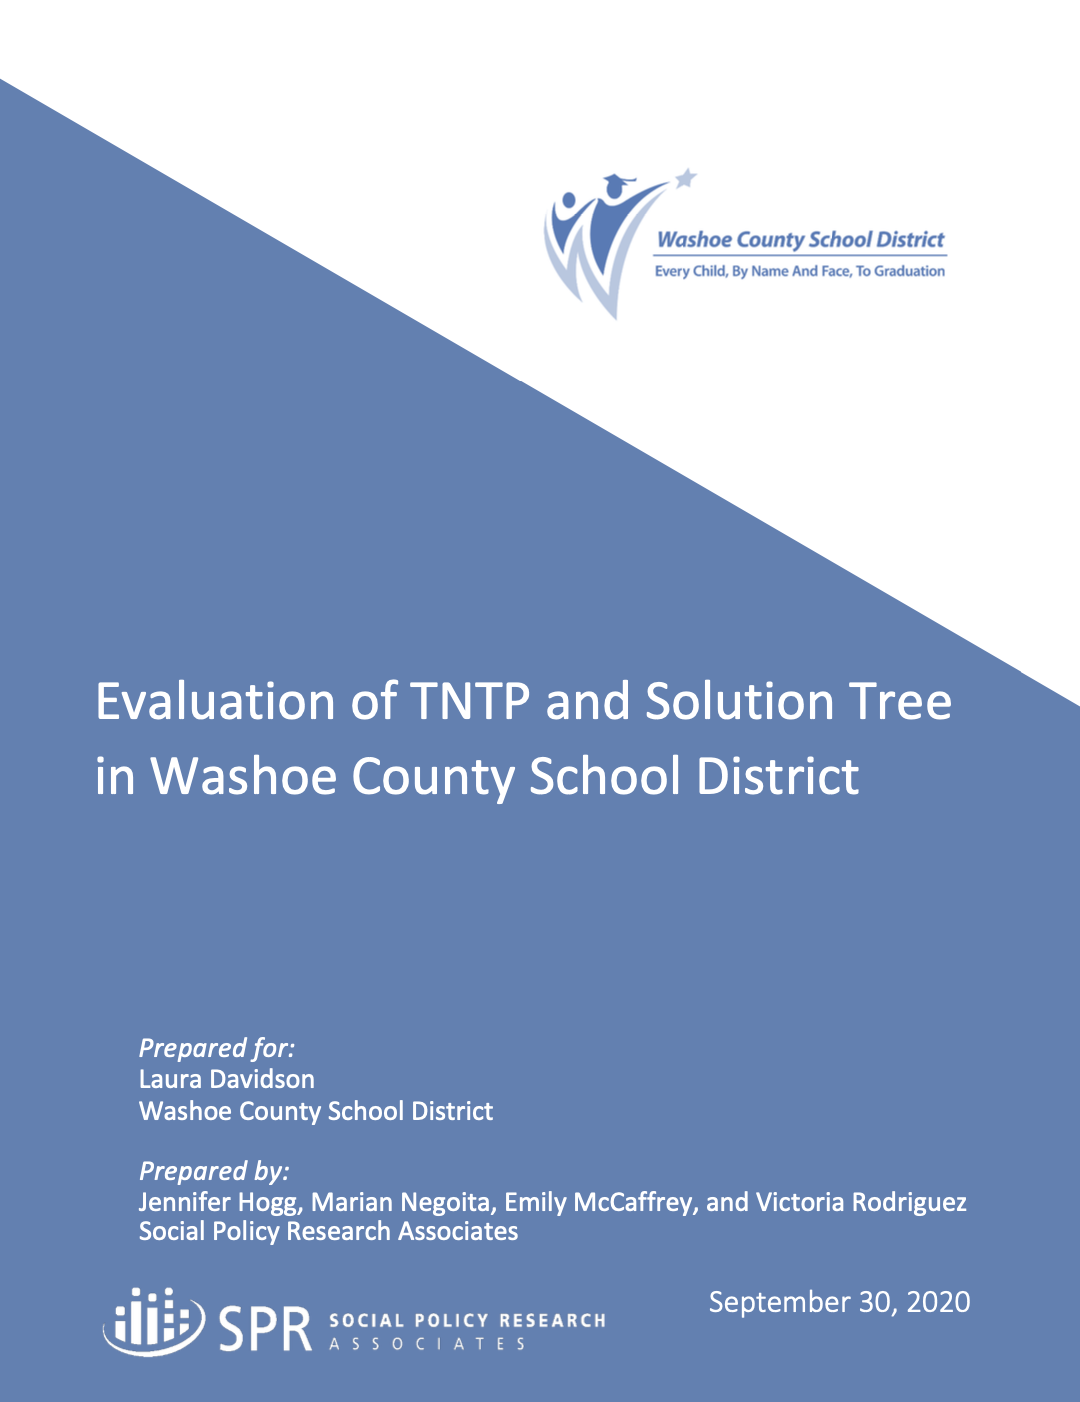 Cover of Evaluation of TNTP and Solution Tree in Washoe County School District report